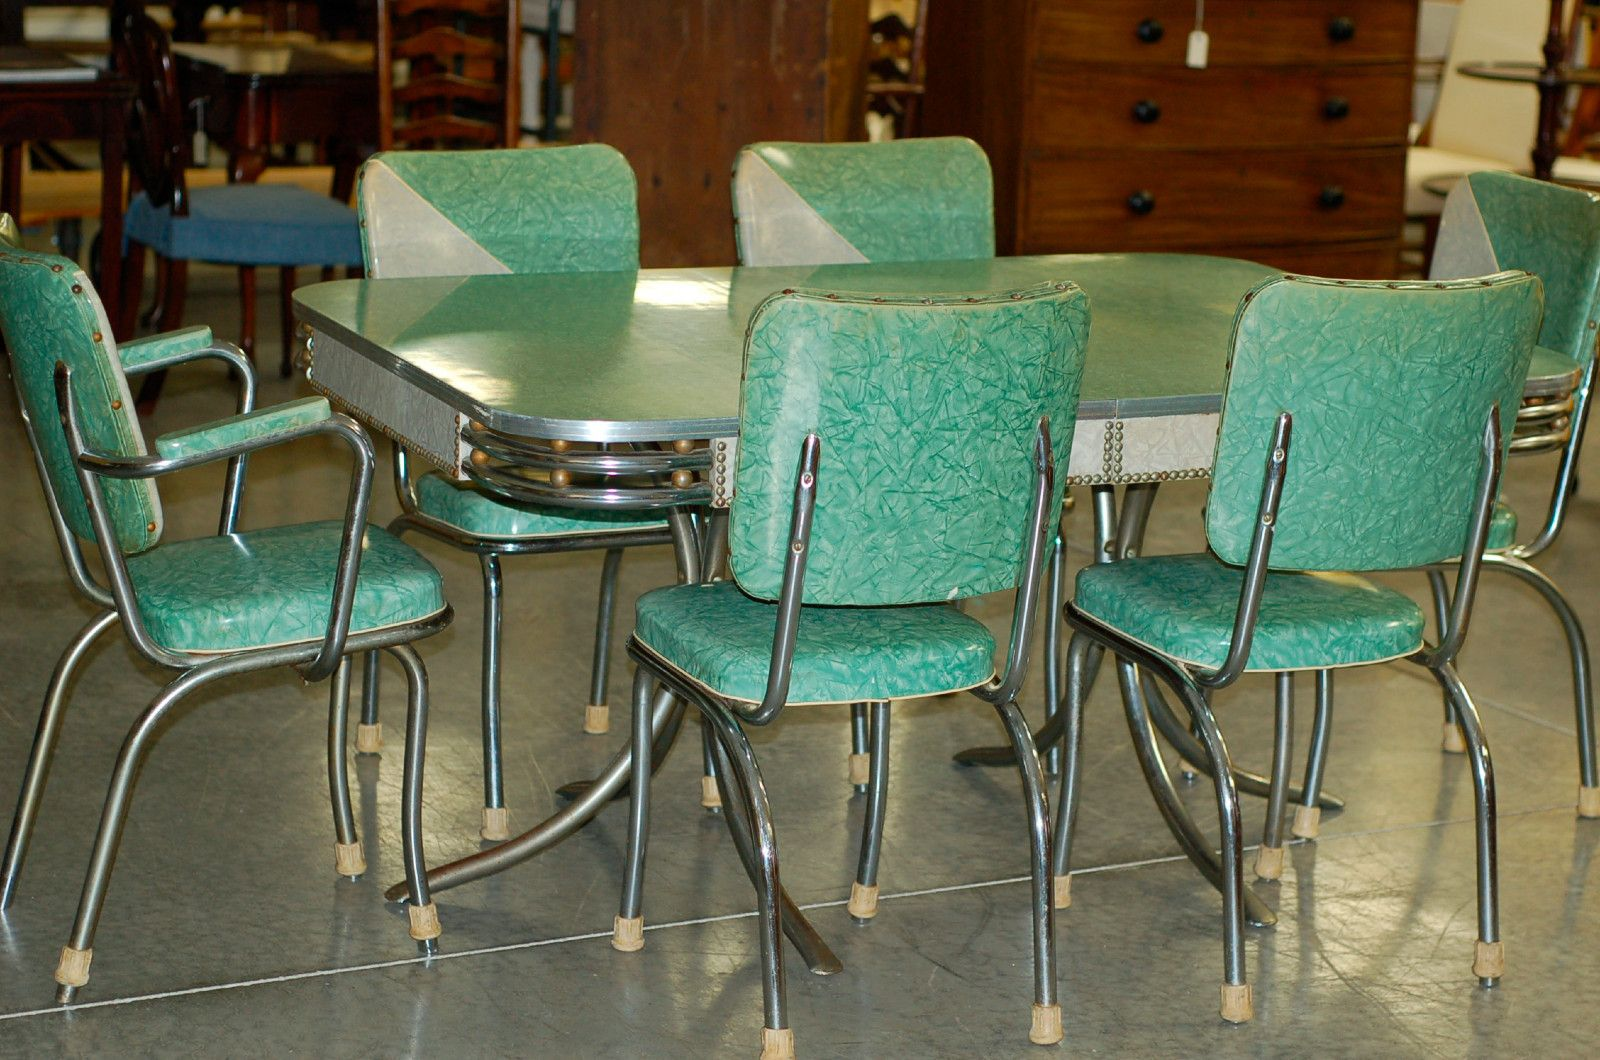 chrome kitchen chairs companies that spray paint cabinets vintage 1950 s formica table and teal mint green wow 700